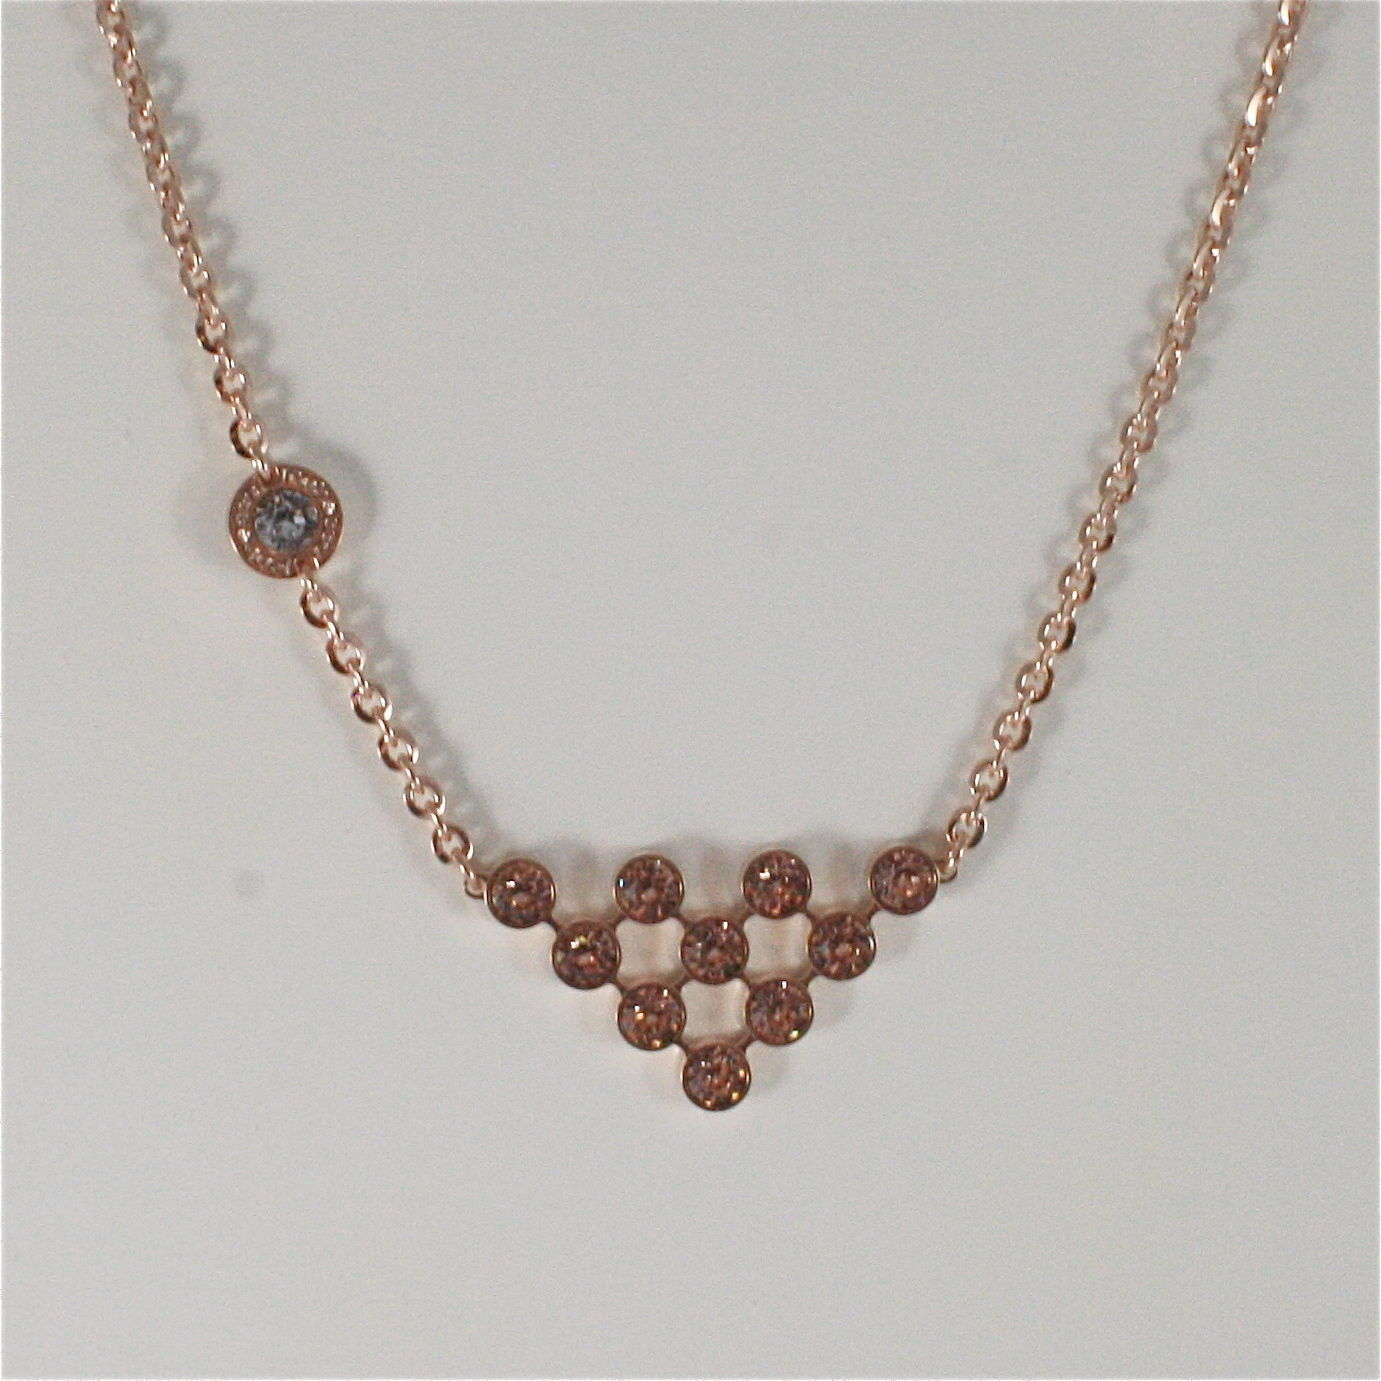 ROSE GOLD PLATED BRONZE REBECCA CLUSTER NECKLACE BPBKRP05 MADE IN ITALY 18.90 IN